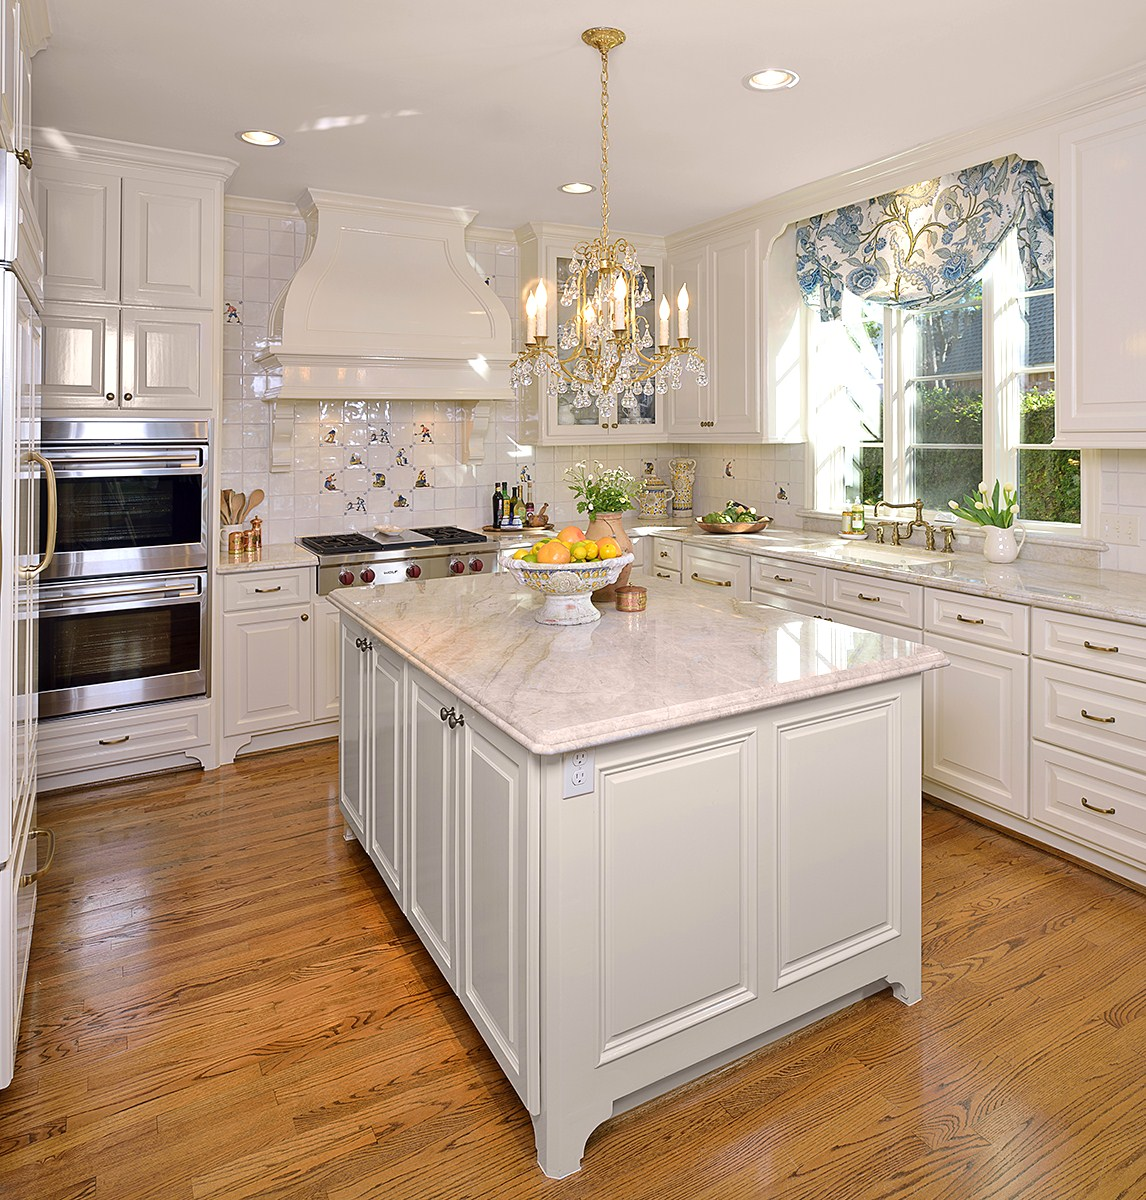 Design Tour A White Kitchen W A Soft Look And A Whole Lot Of Pretty